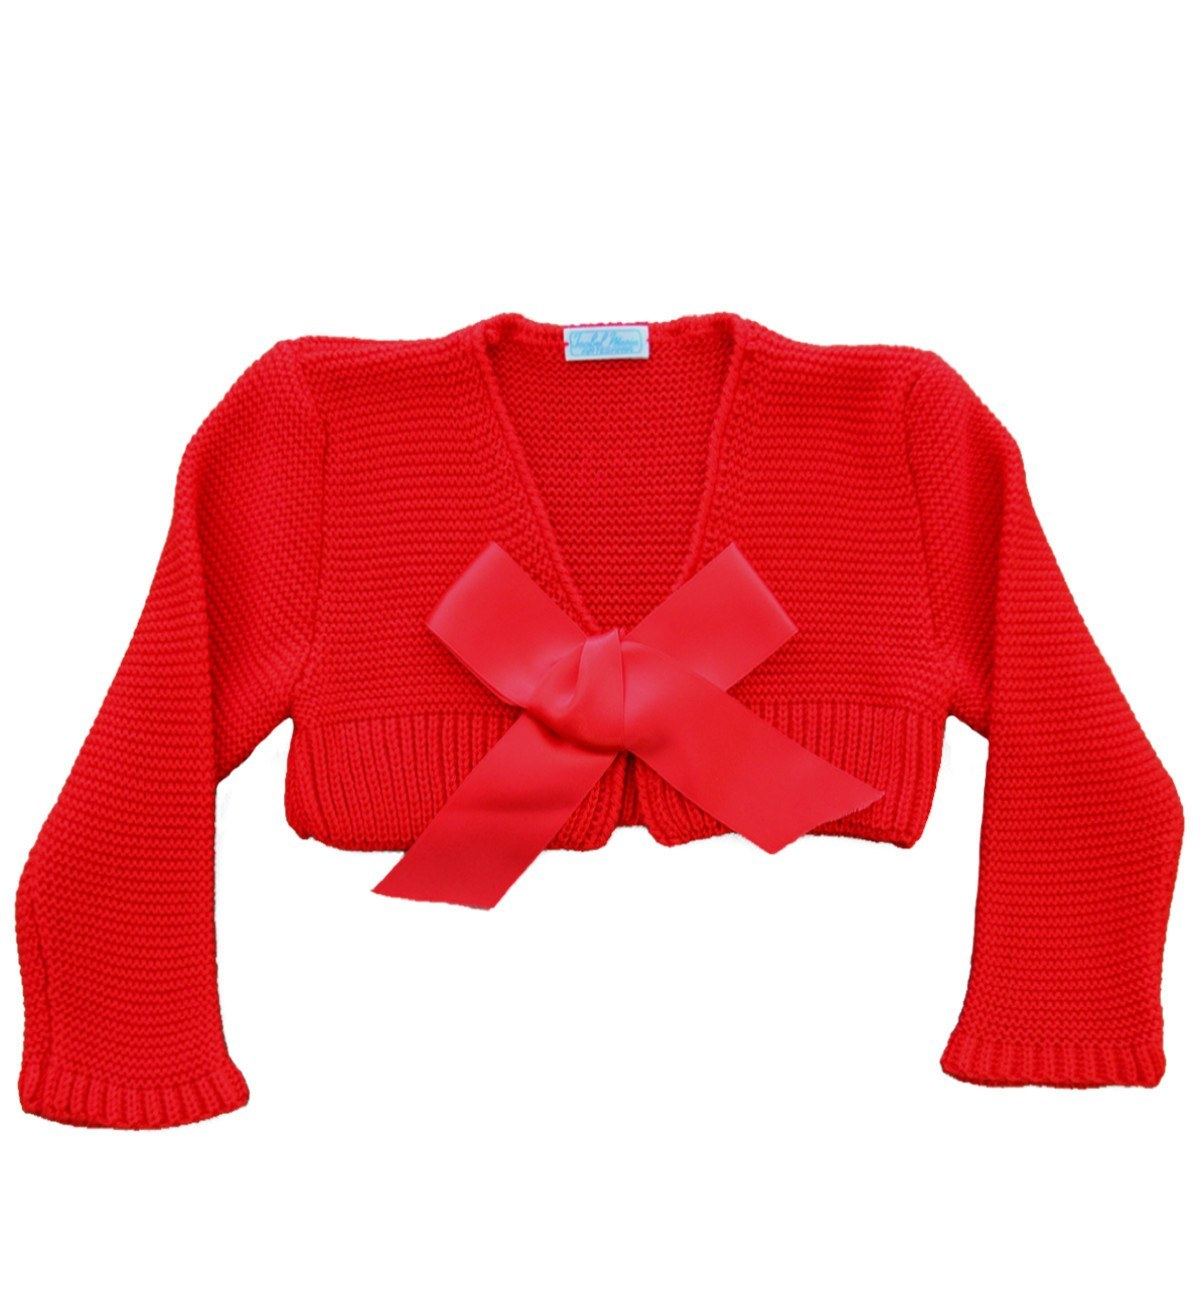 Spanish baby clothes | baby Cardigan & Coat | Red satin ribbon bolero |babymaC